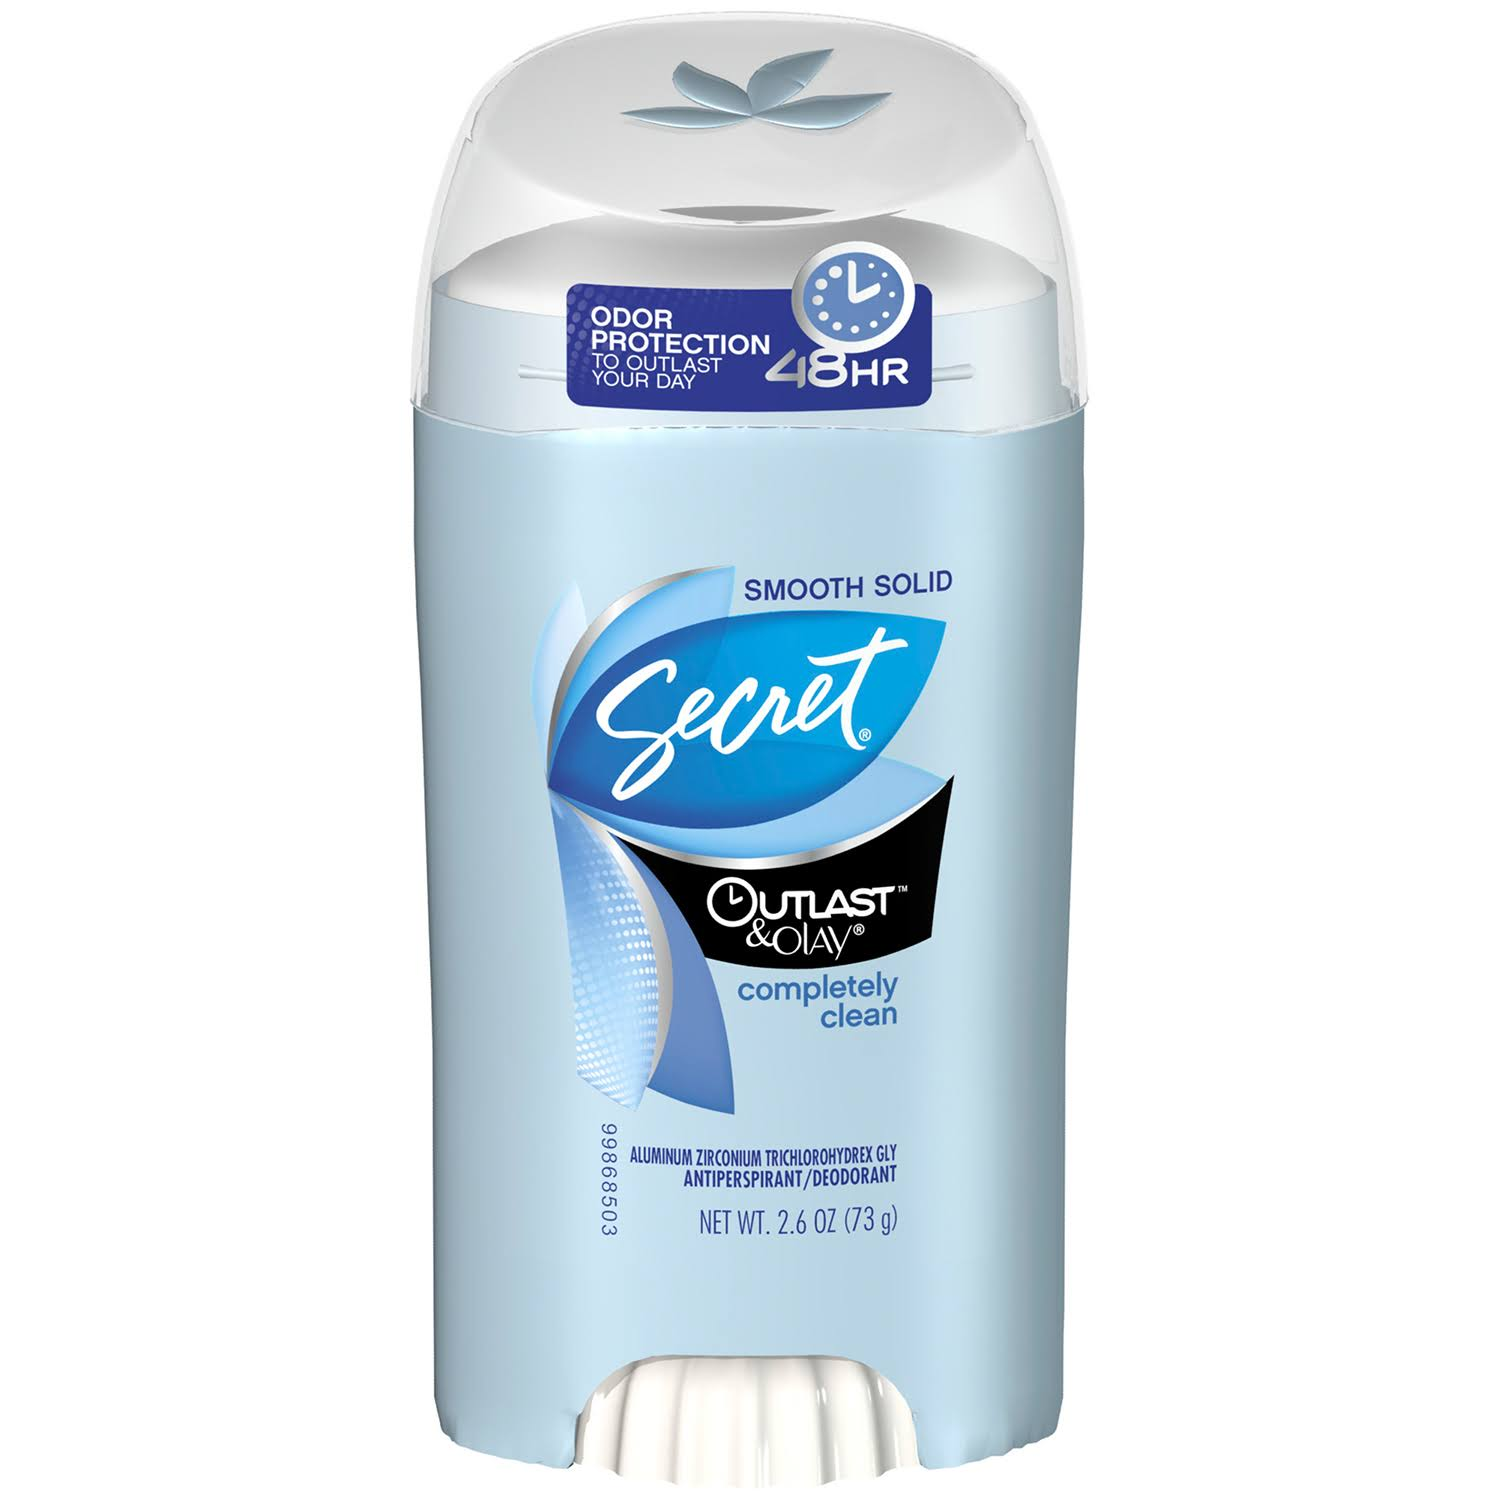 Secret Outlast & Olay Completely Clean Smooth Solid Women's Antiperspirant & Deodorant - 2.6oz